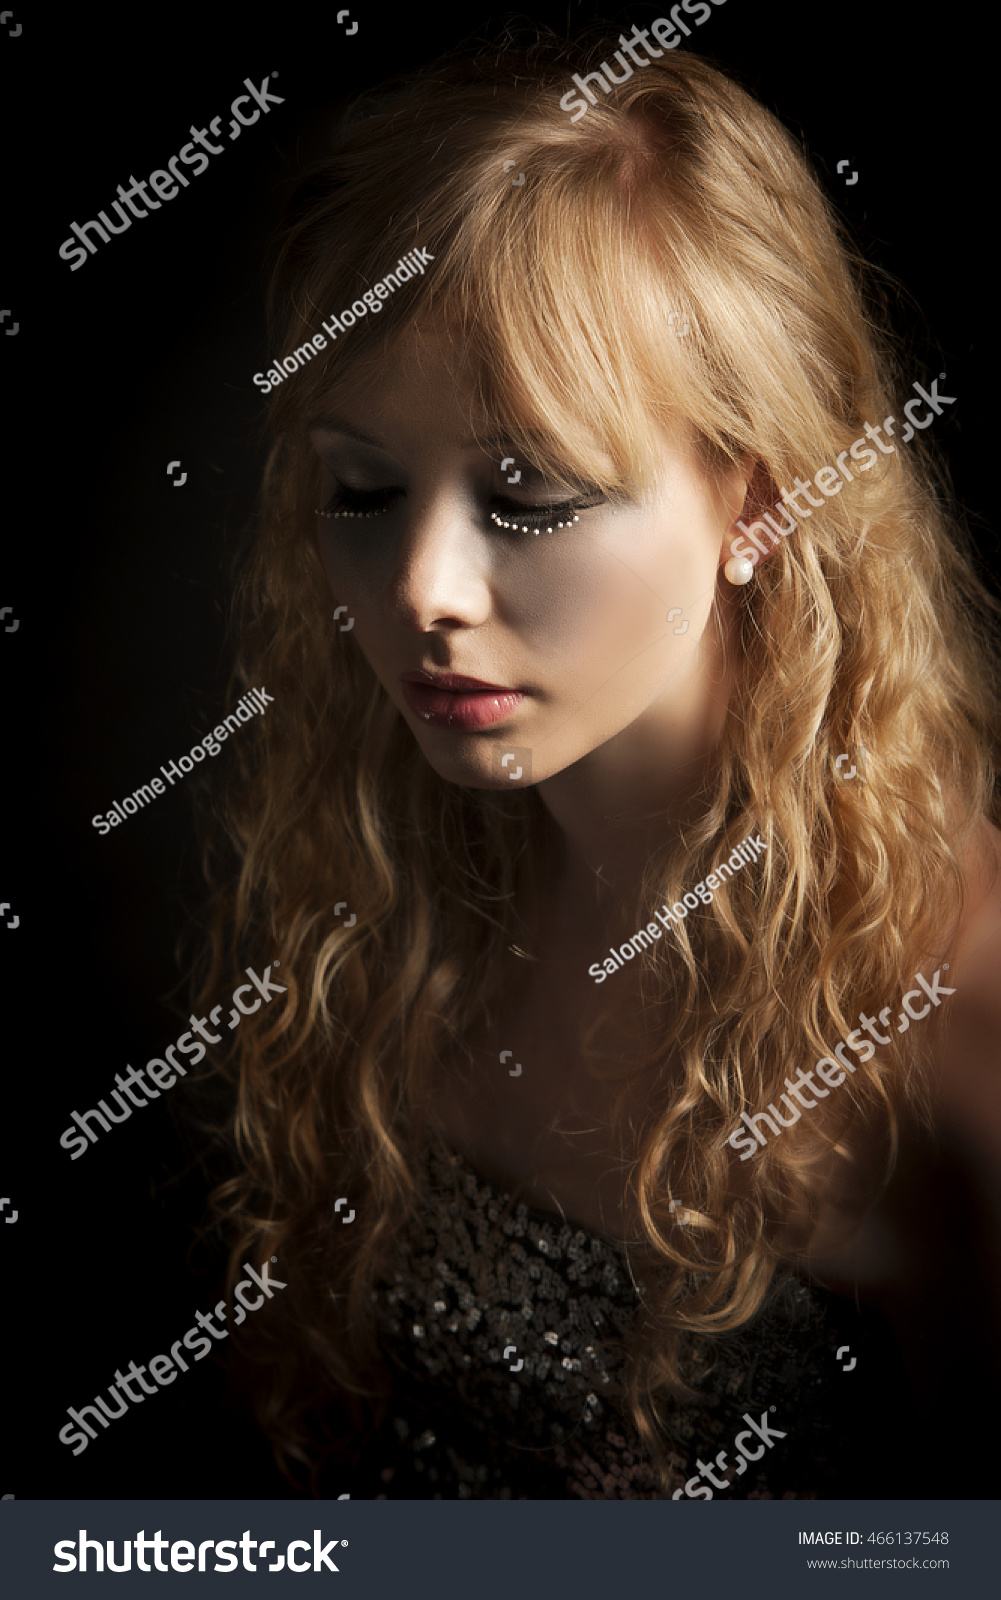 f31207aee8b Portrait of beautiful blonde woman wearing fantasy makeup of silver  eyeshadow